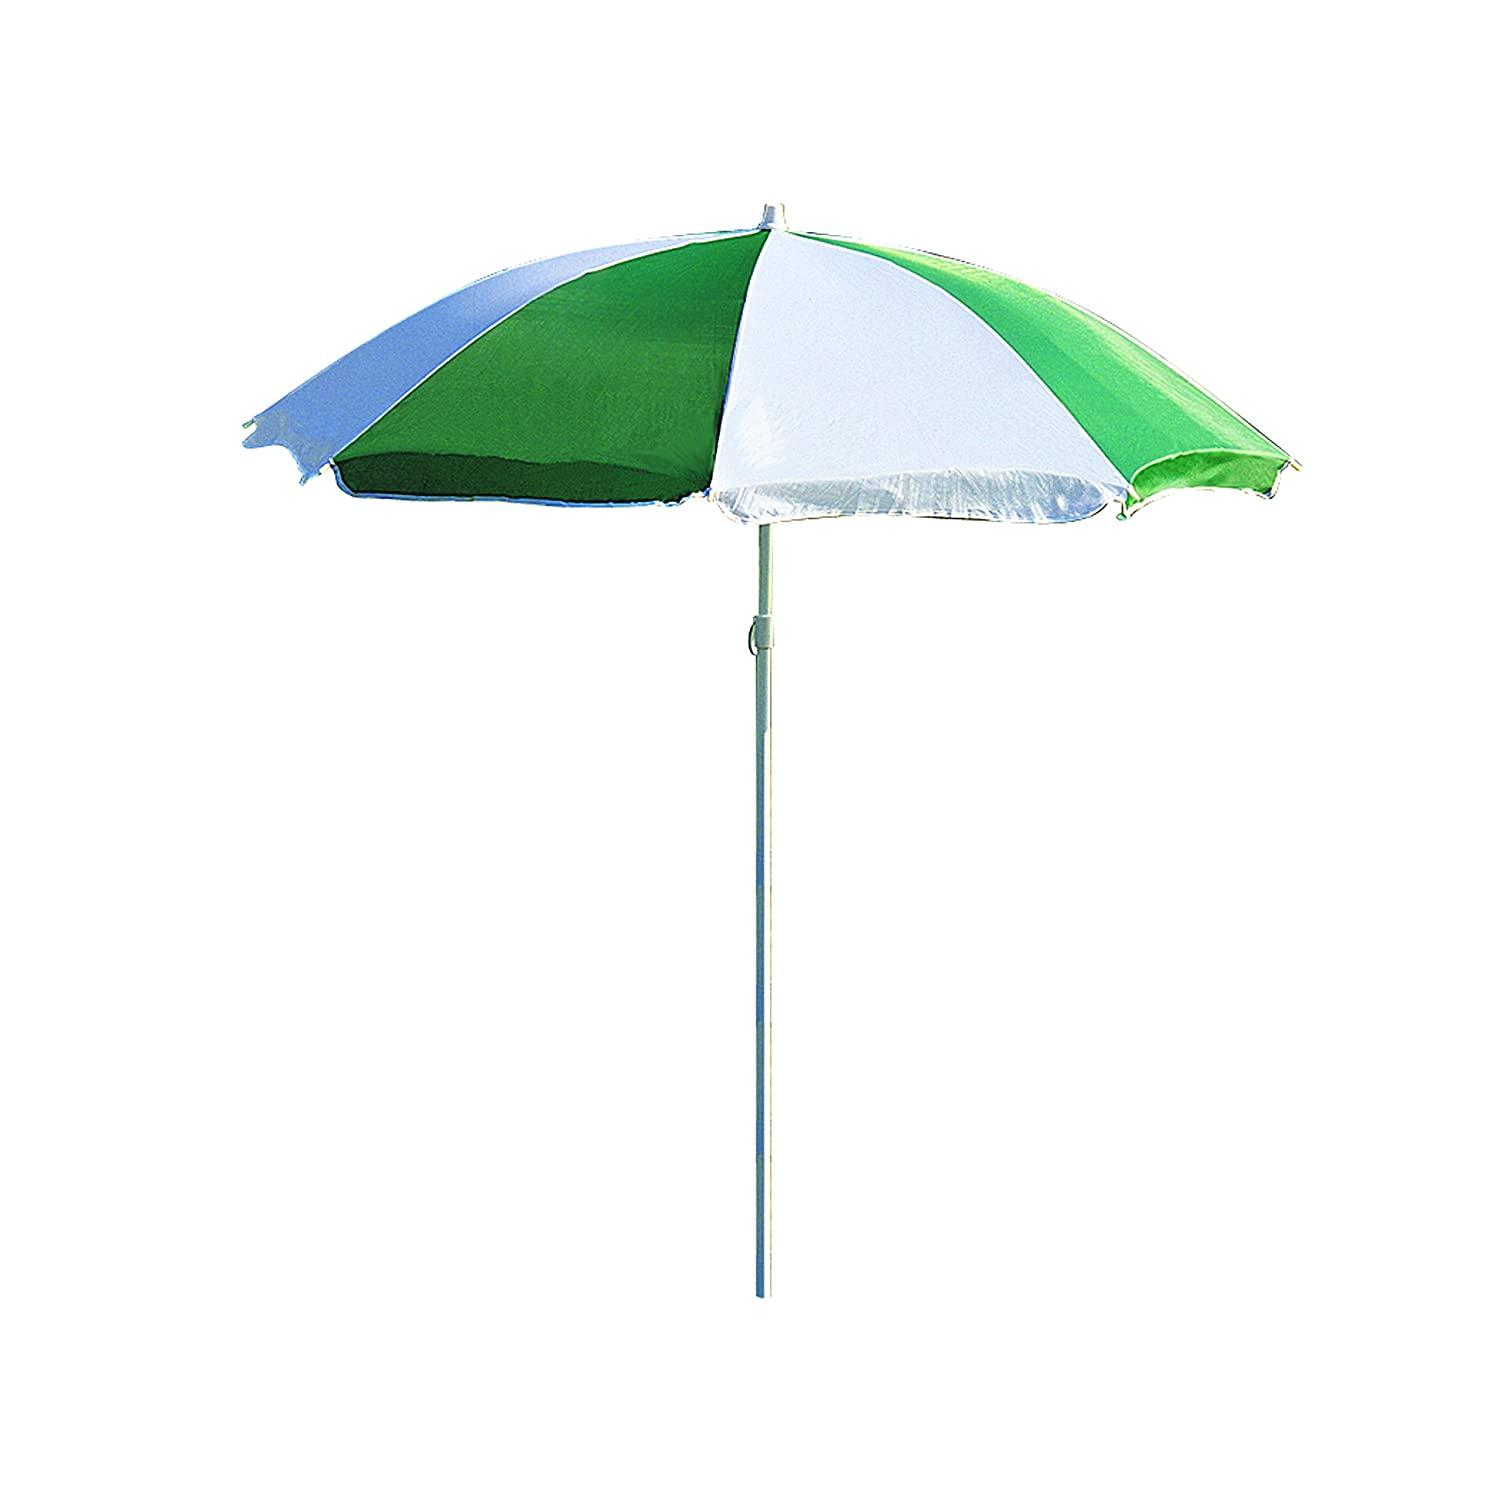 Marvelous Stansport Picnic Table And Umbrella Combo Pack, Green: Amazon.ca: Sports U0026  Outdoors